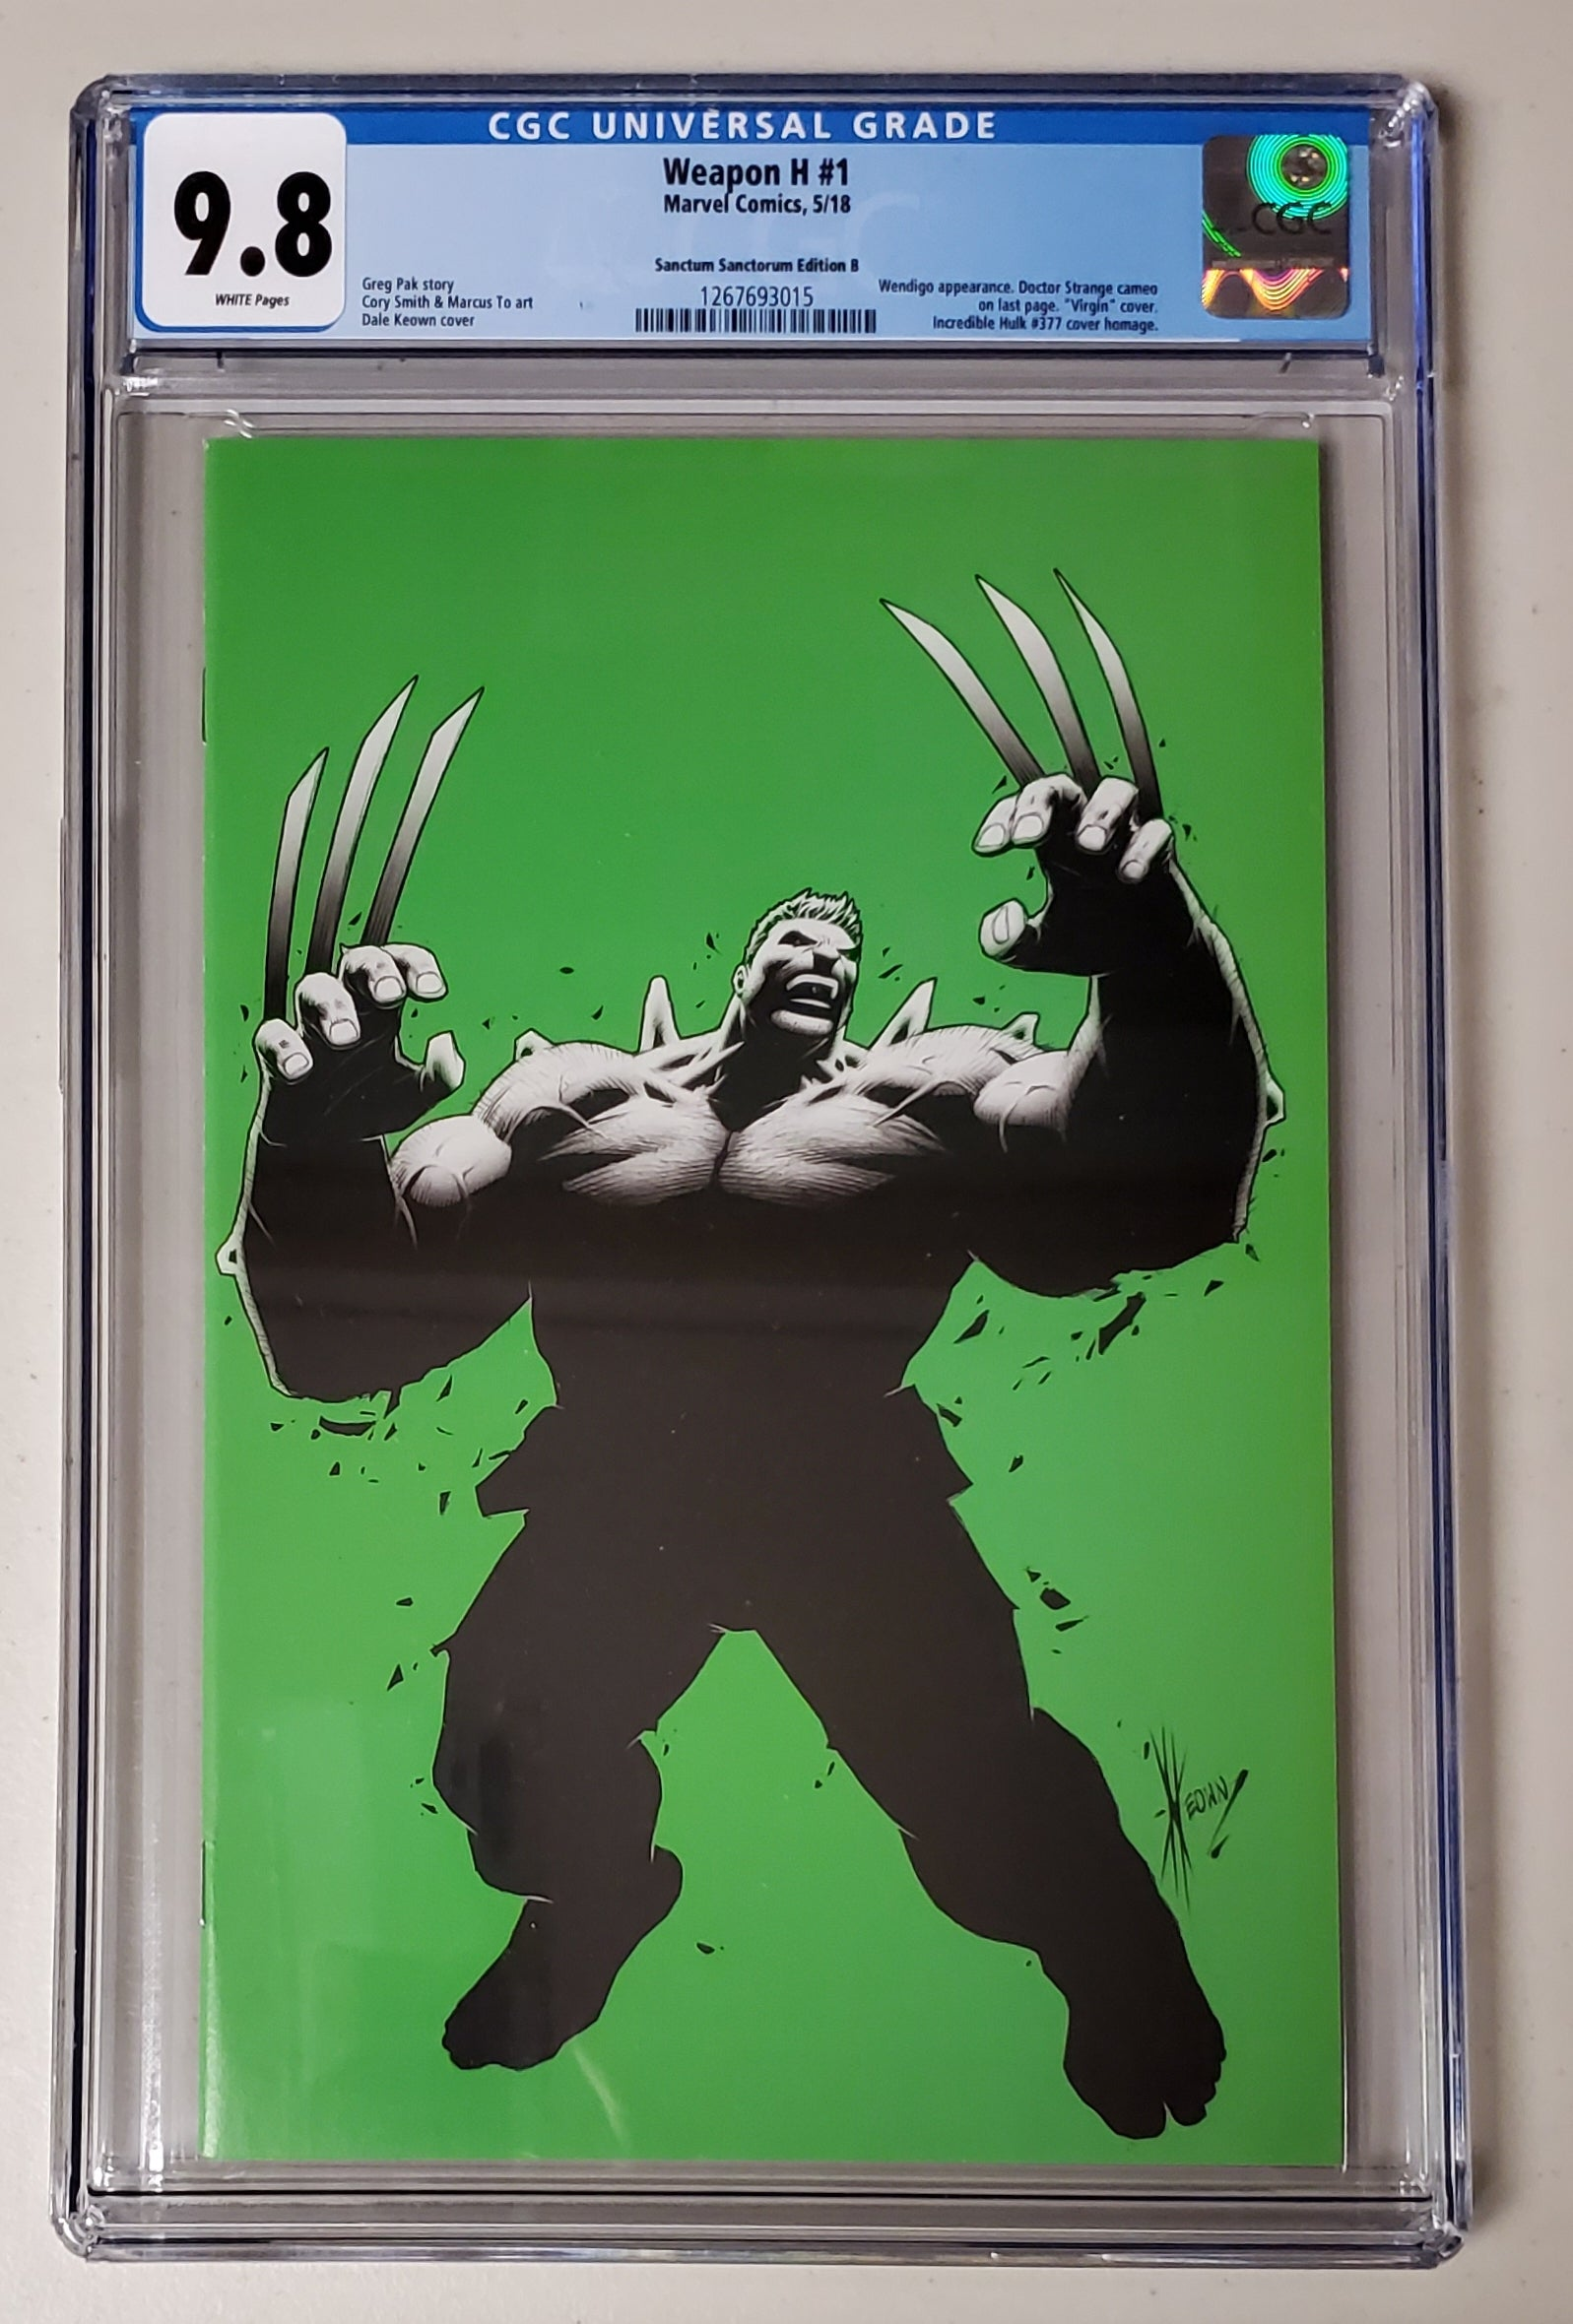 9.8 CGC Weapon H #1 Dale Keown Incredible Hulk #377 Homage Virgin Variant 2018